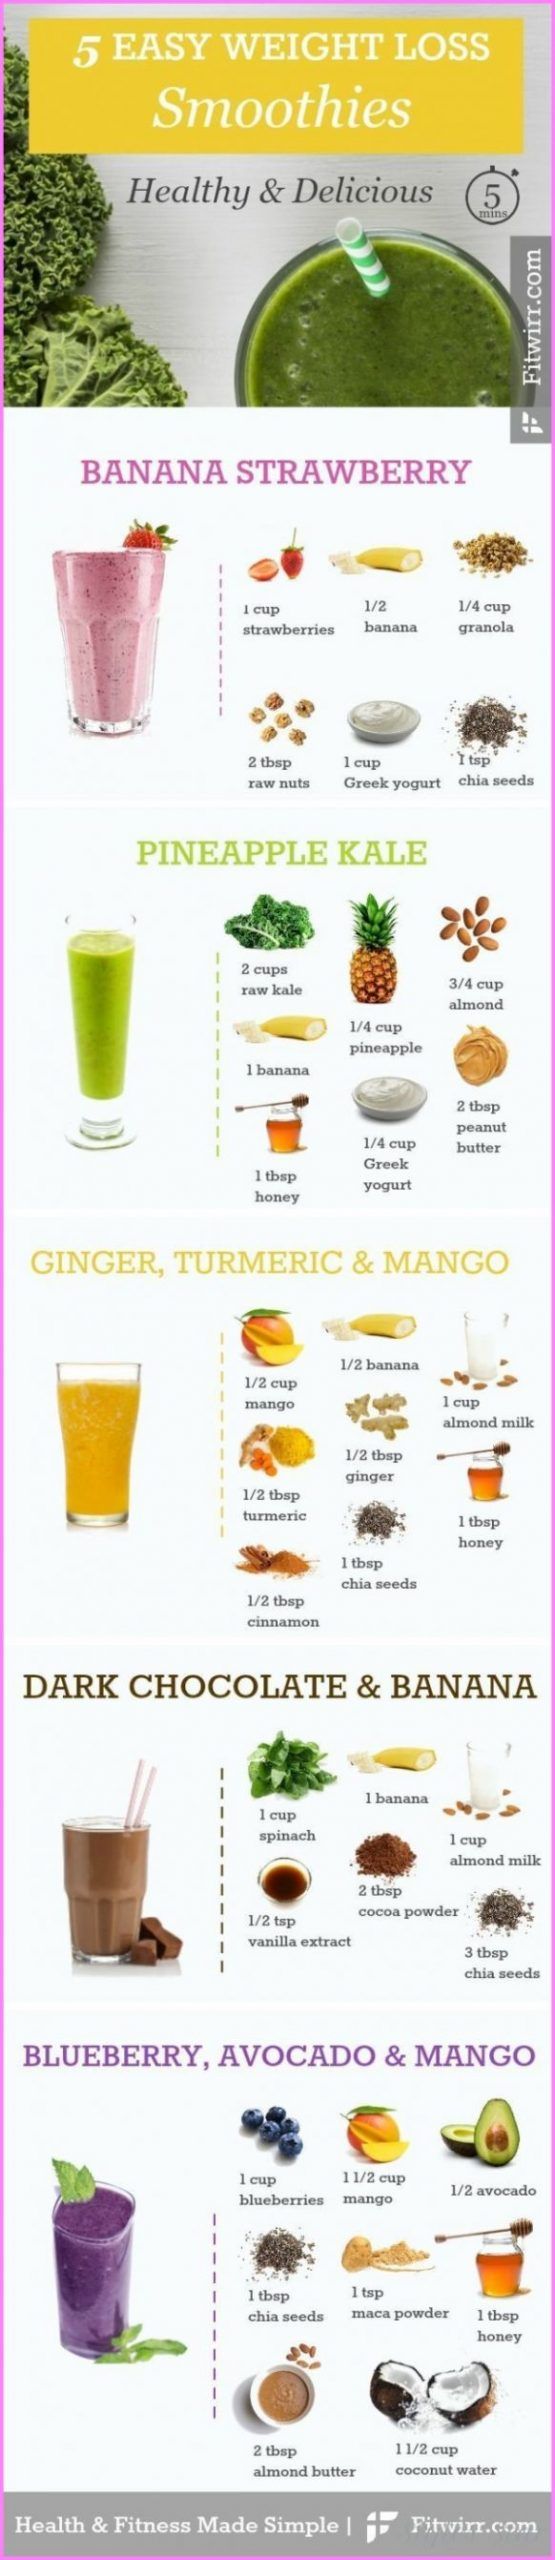 Nutribullet Recipes To Lose Weight Fast - Star Styles | StylesStar ..